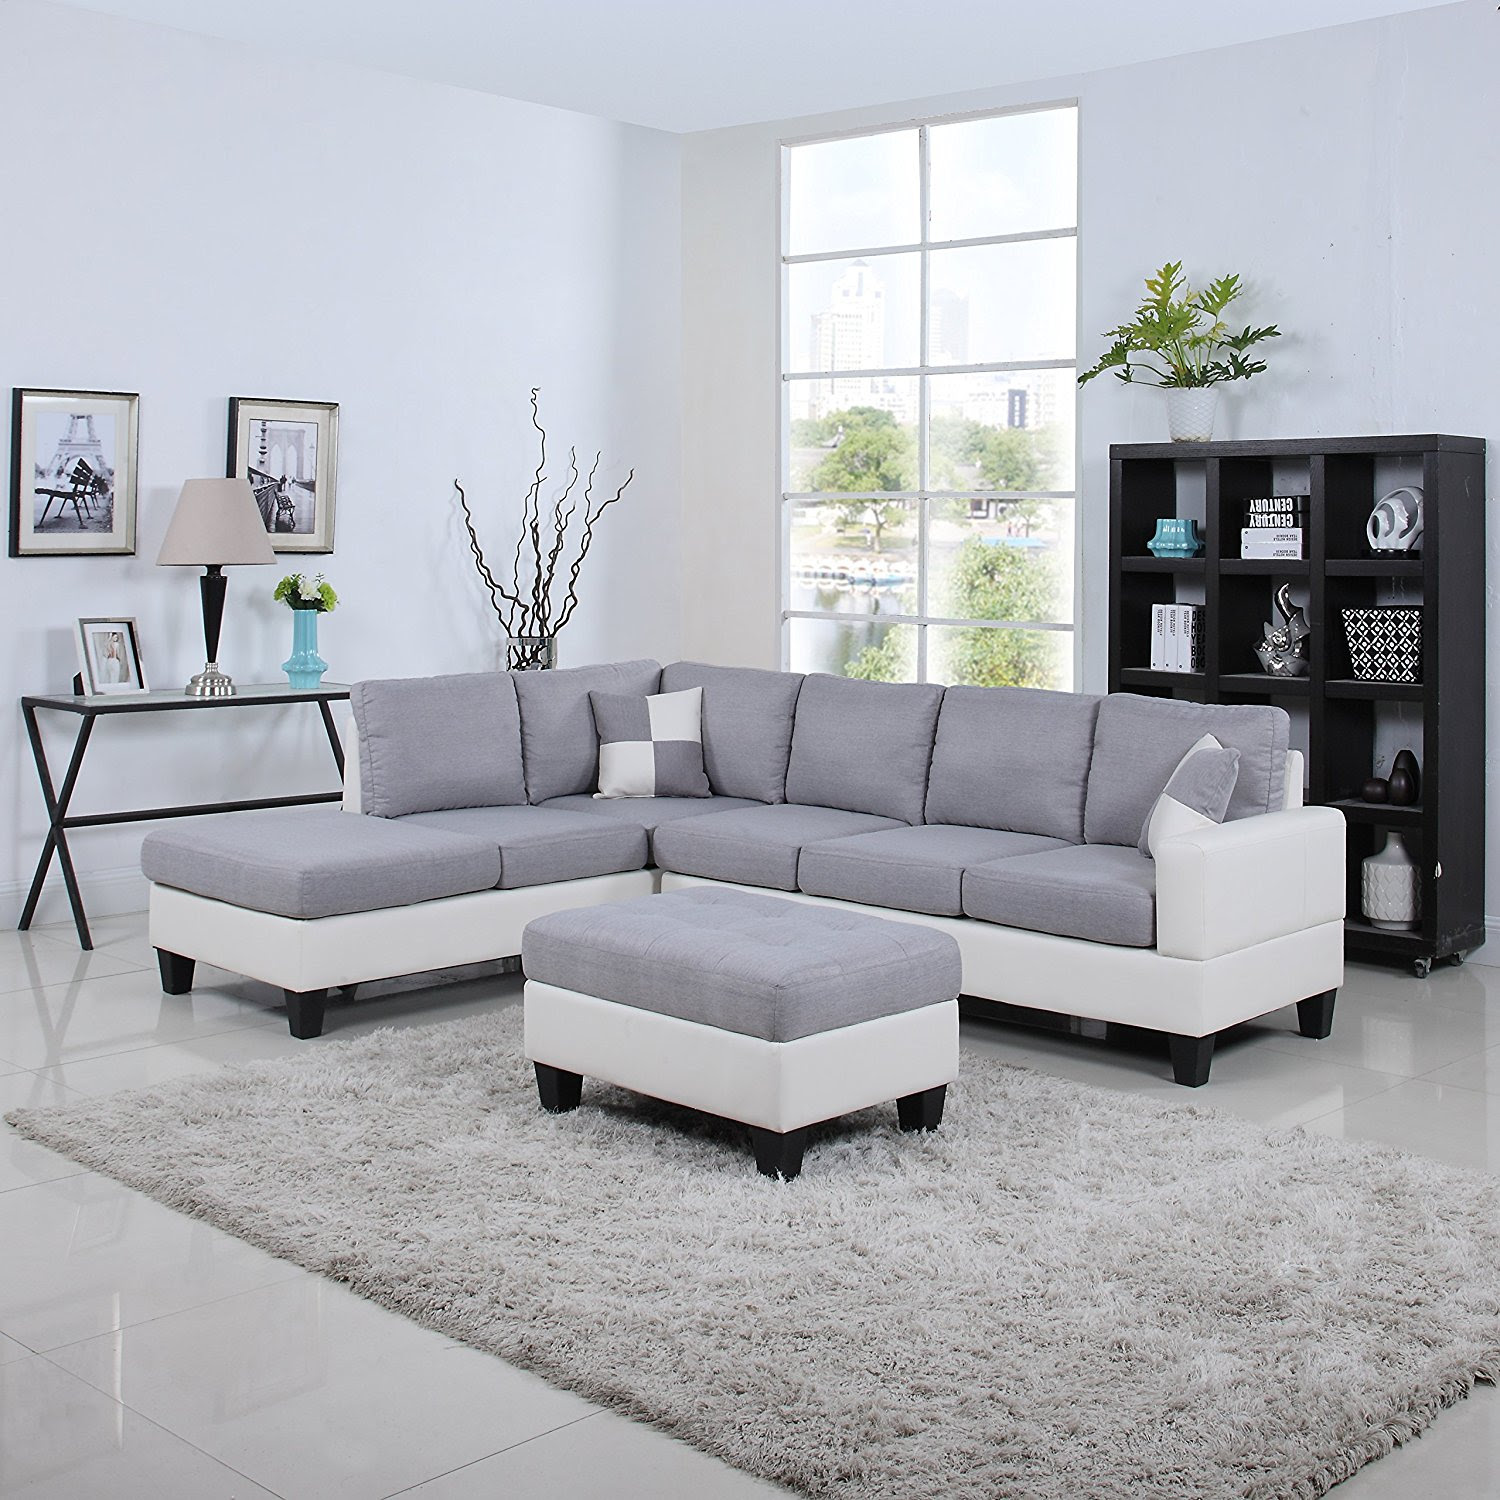 Living Room Sectionals Furniture For Your House | Cool ...